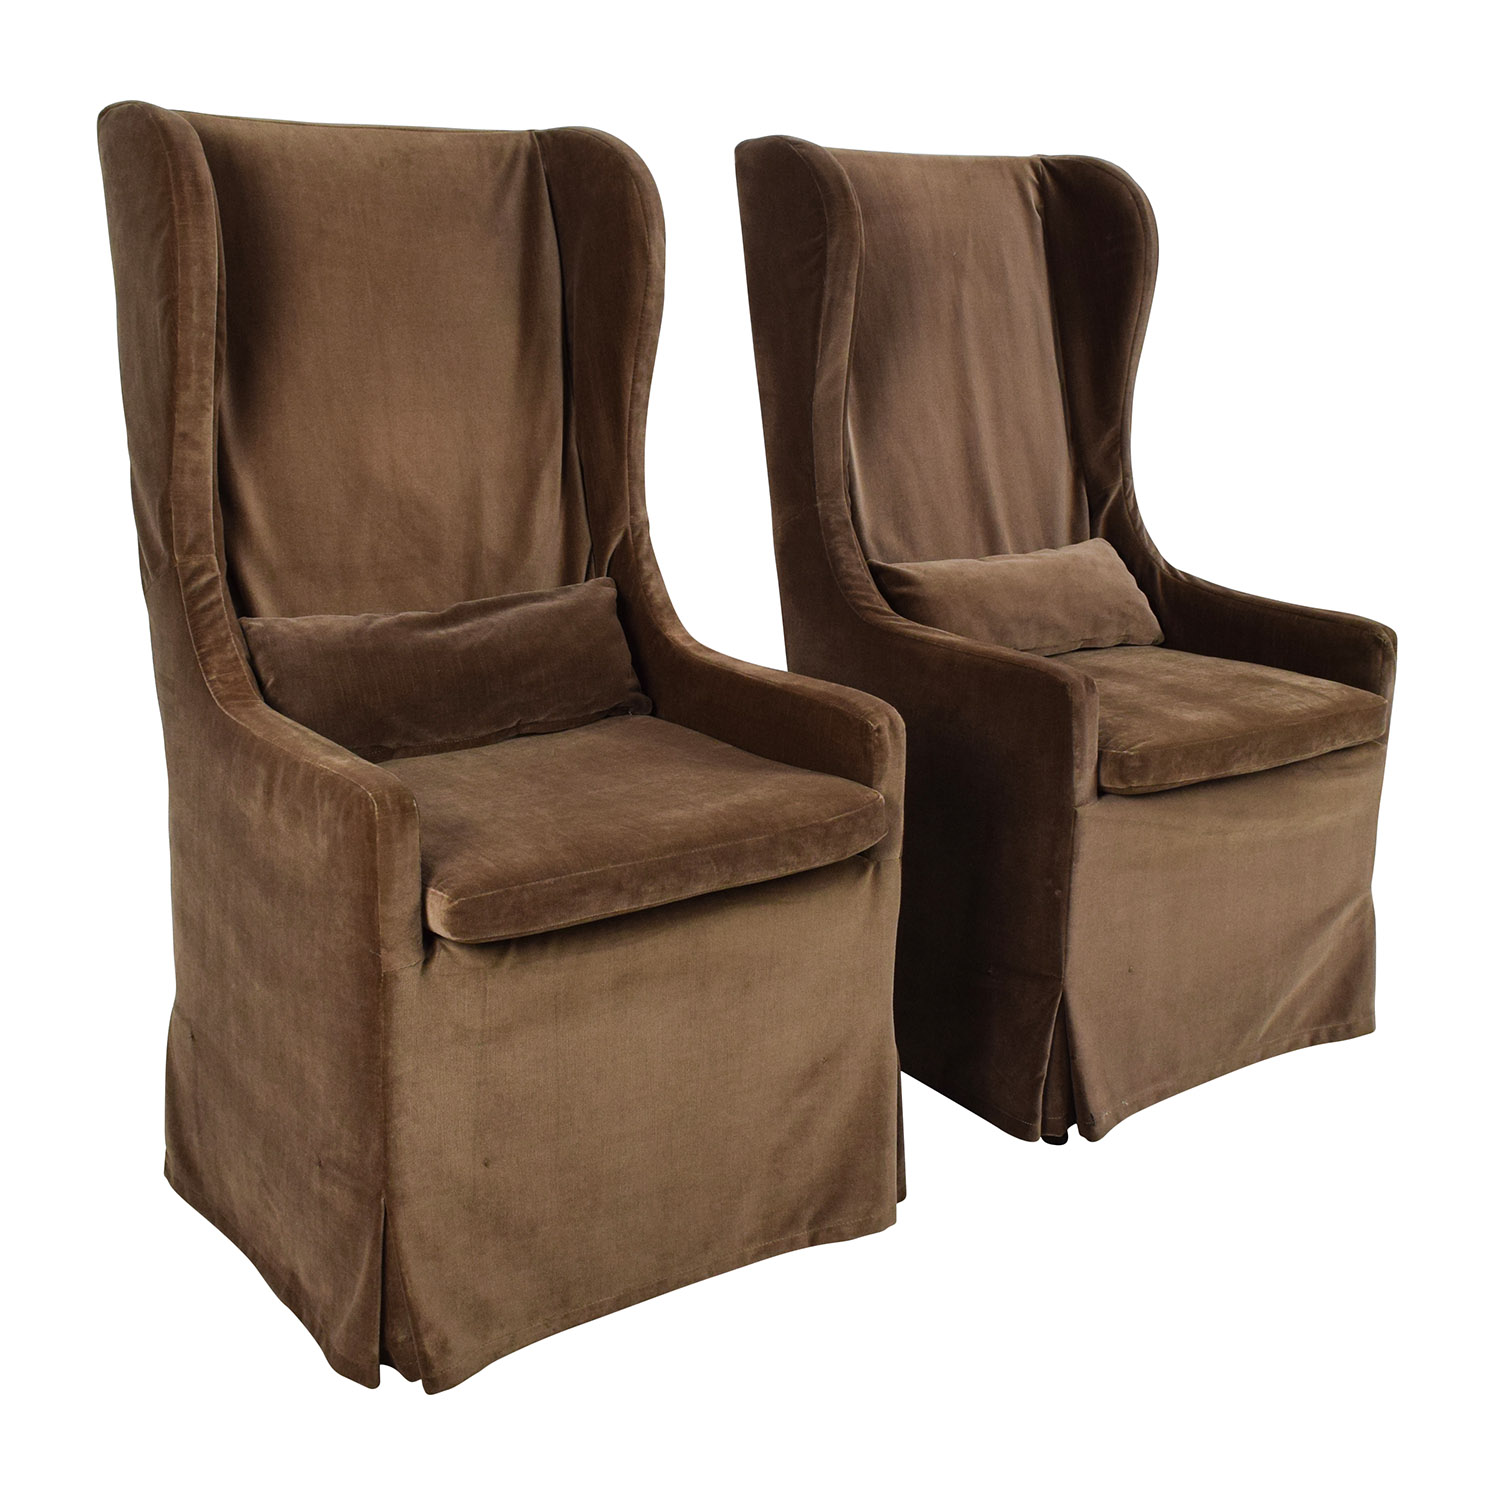 Used Wingback Chairs 90 Off Restoration Hardware Restoration Hardware